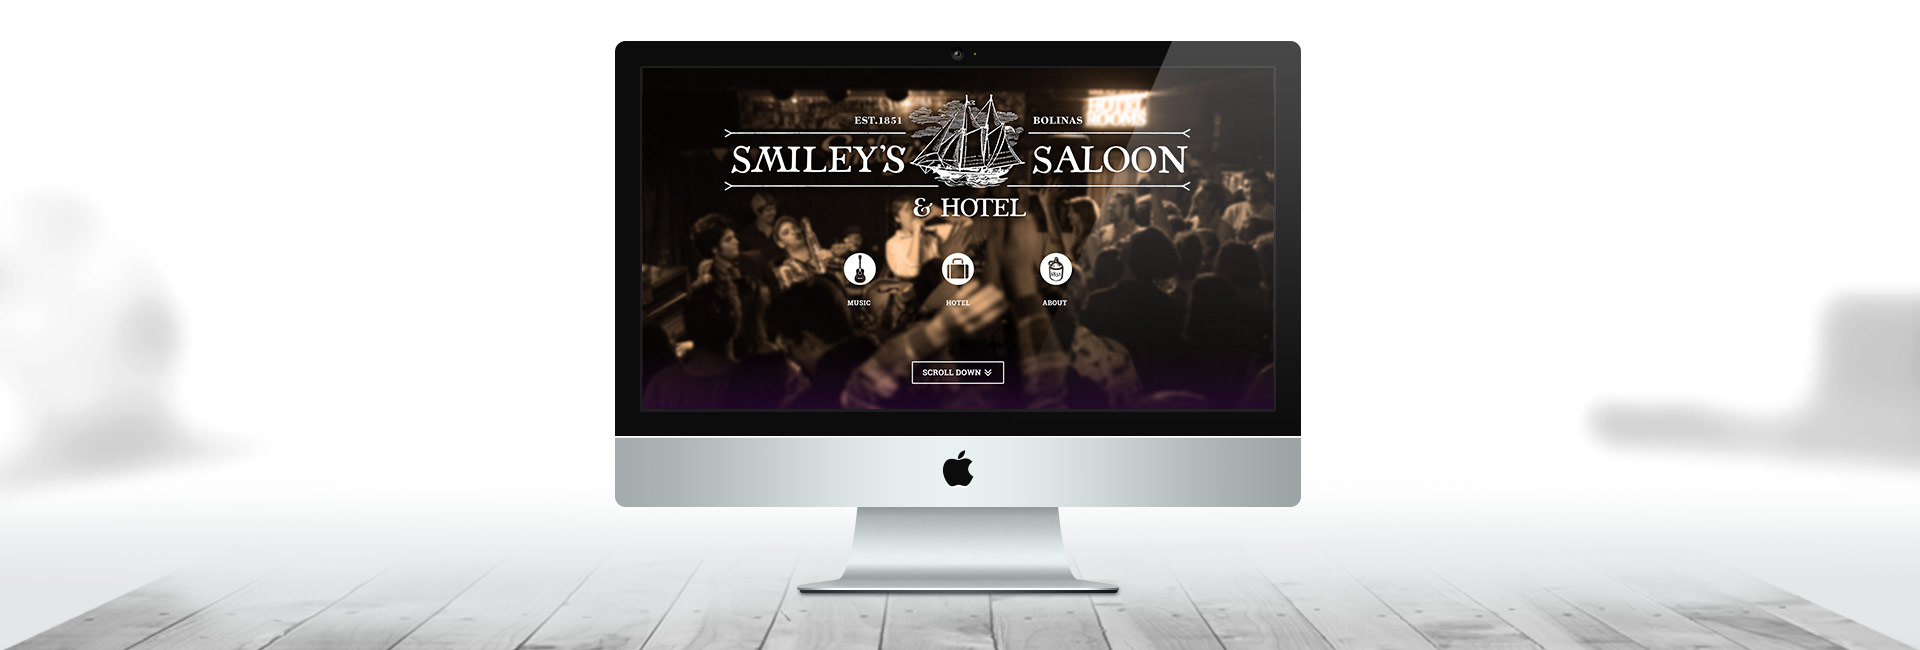 Smiley's Saloon